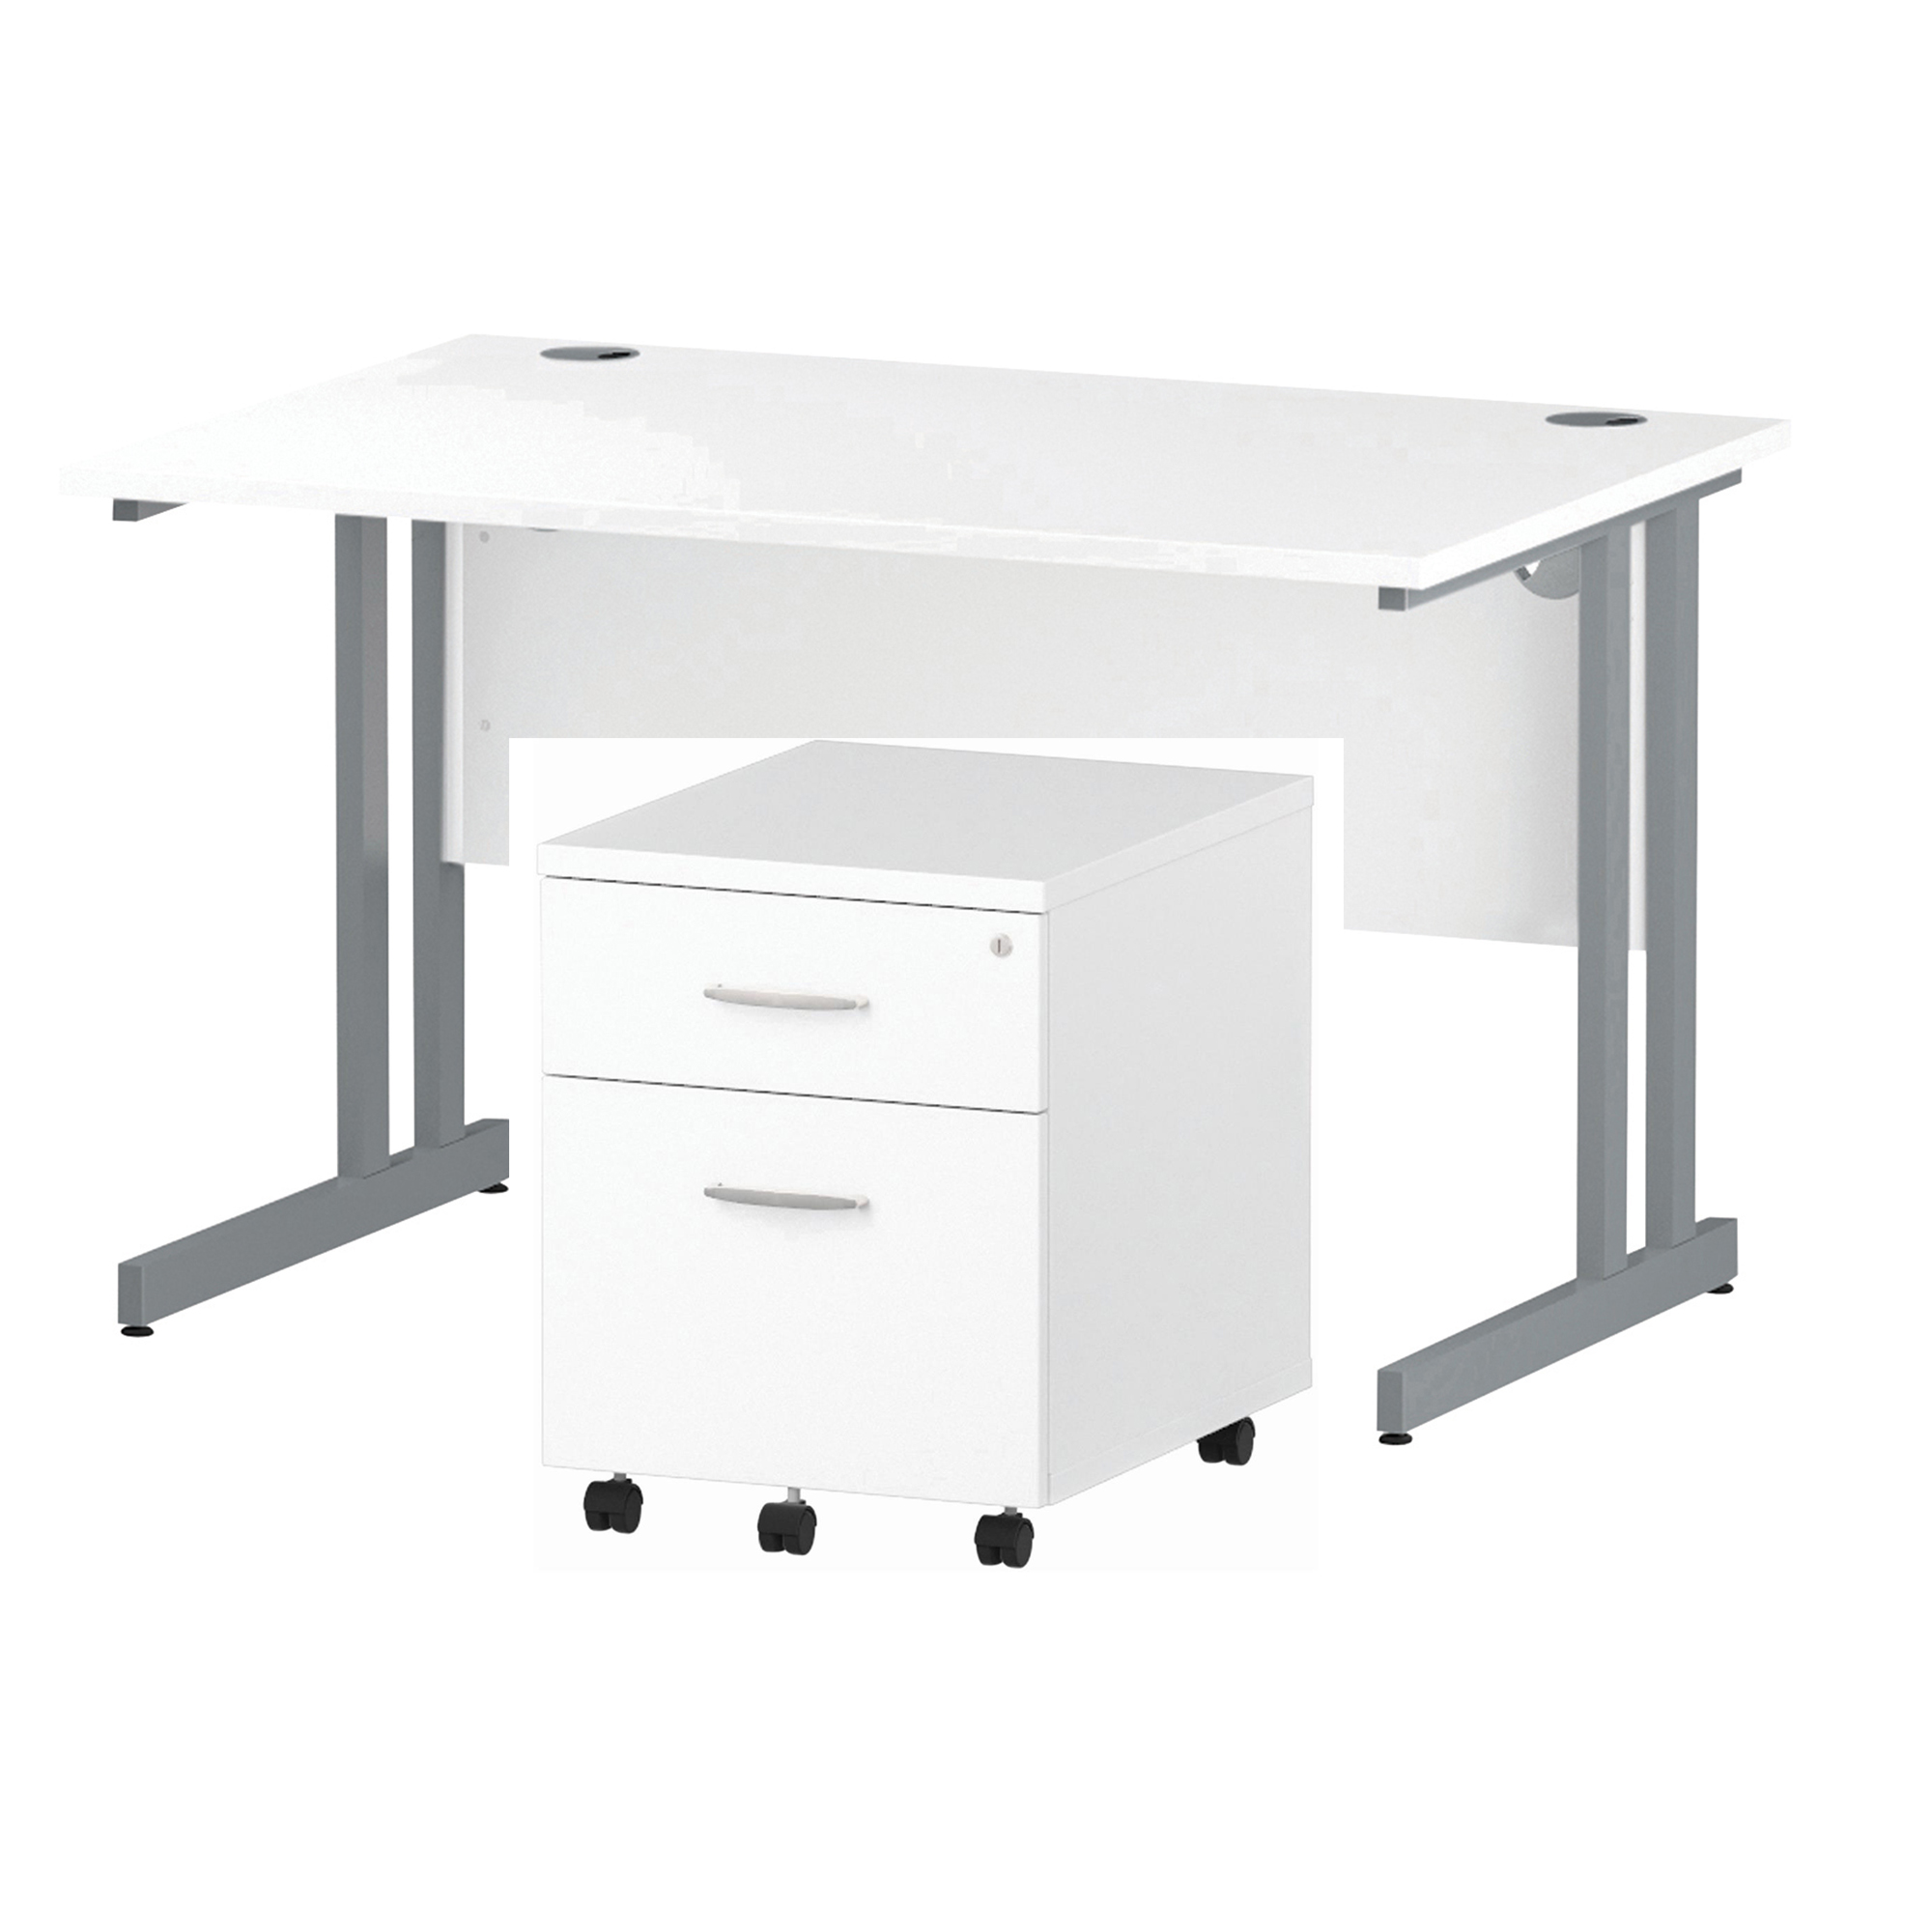 Desks Trexus Cantilever Desk 1200x800 & 2 Drawer Pedestal White Bundle Offer Feb-Apr 2020